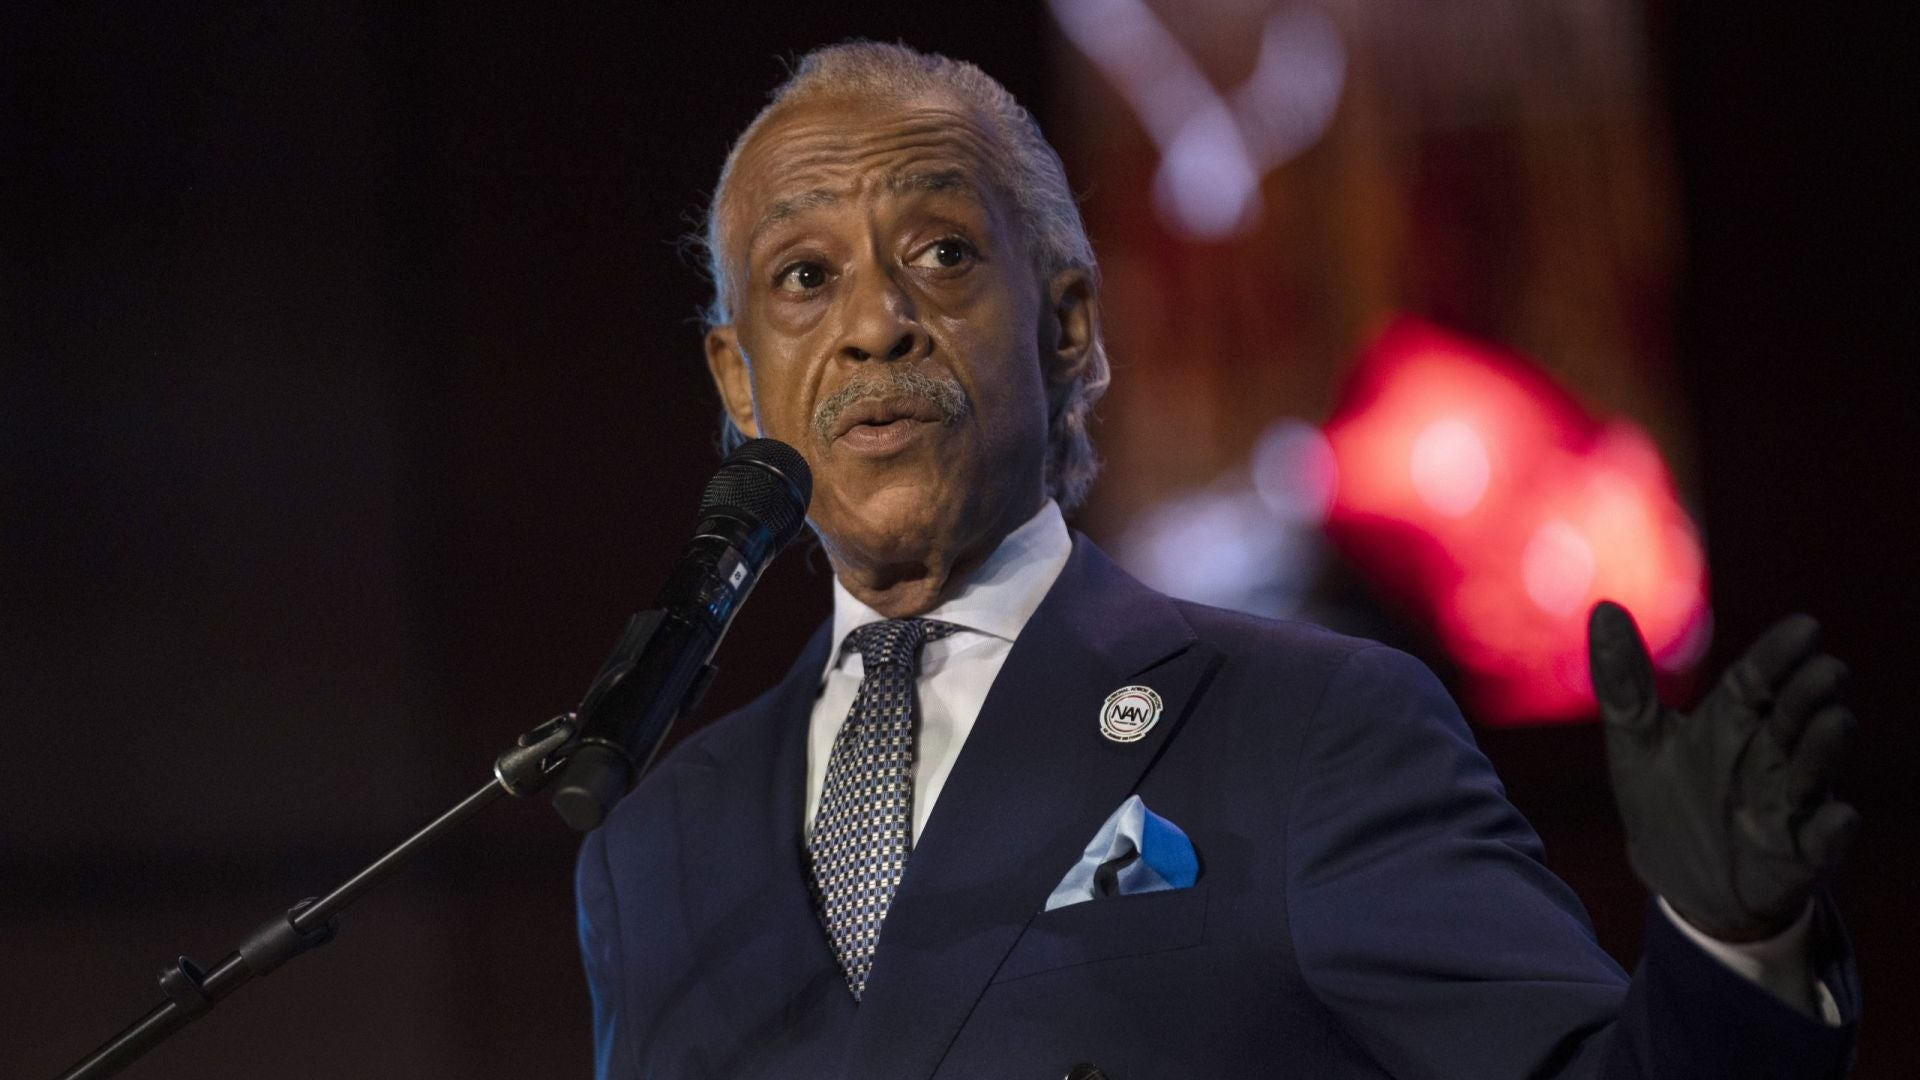 Rev. Al Sharpton Says It's Time To Recommit To The Strength Of Black Women